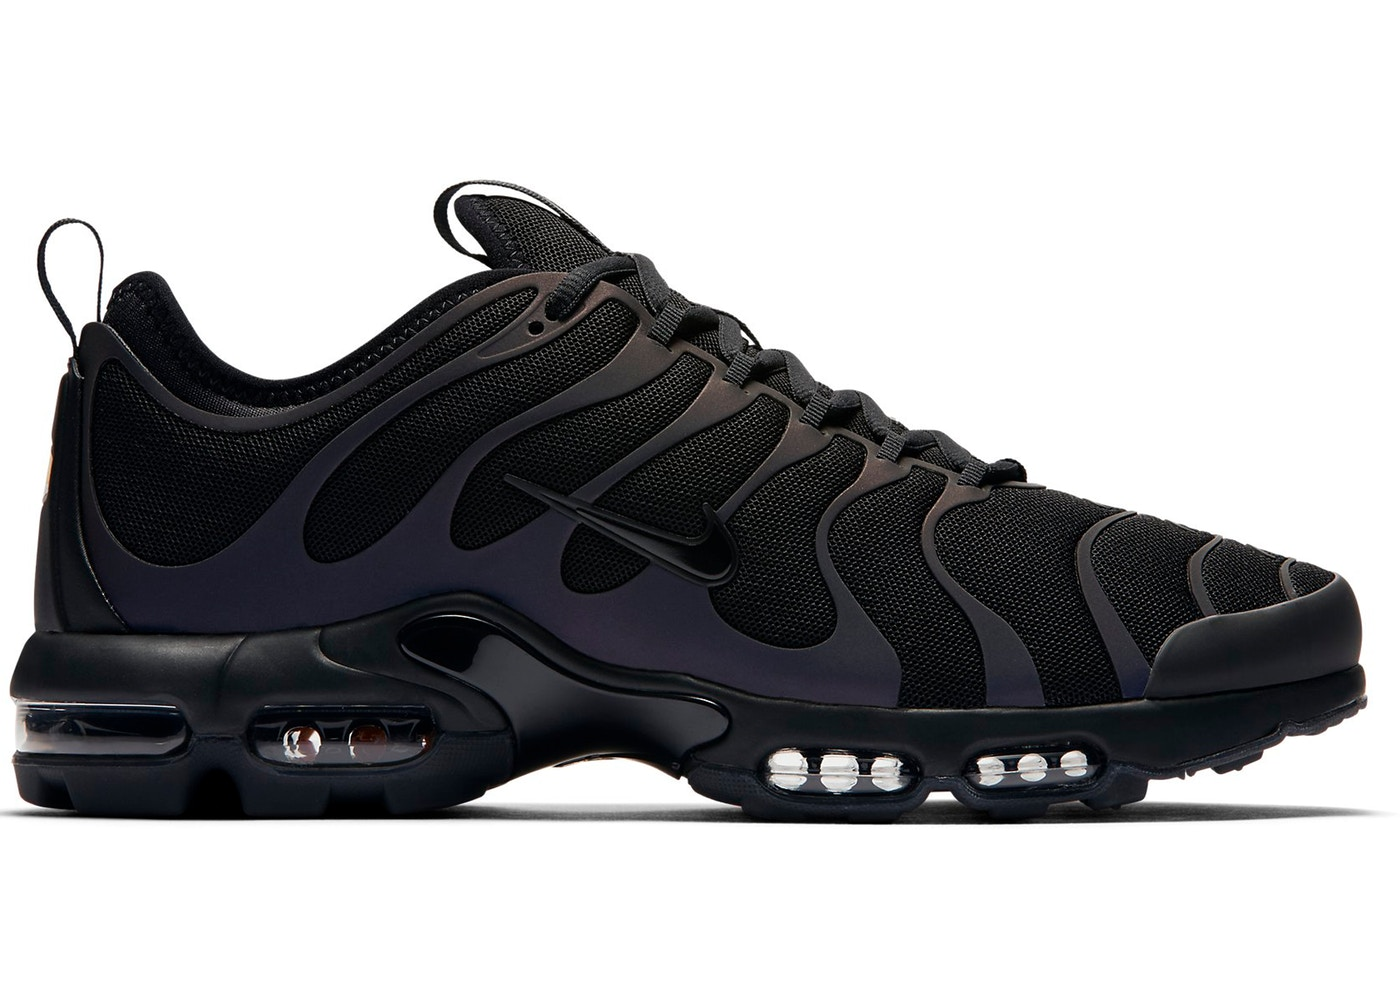 Air Max Plus TN Ultra Triple Black - 898015-002